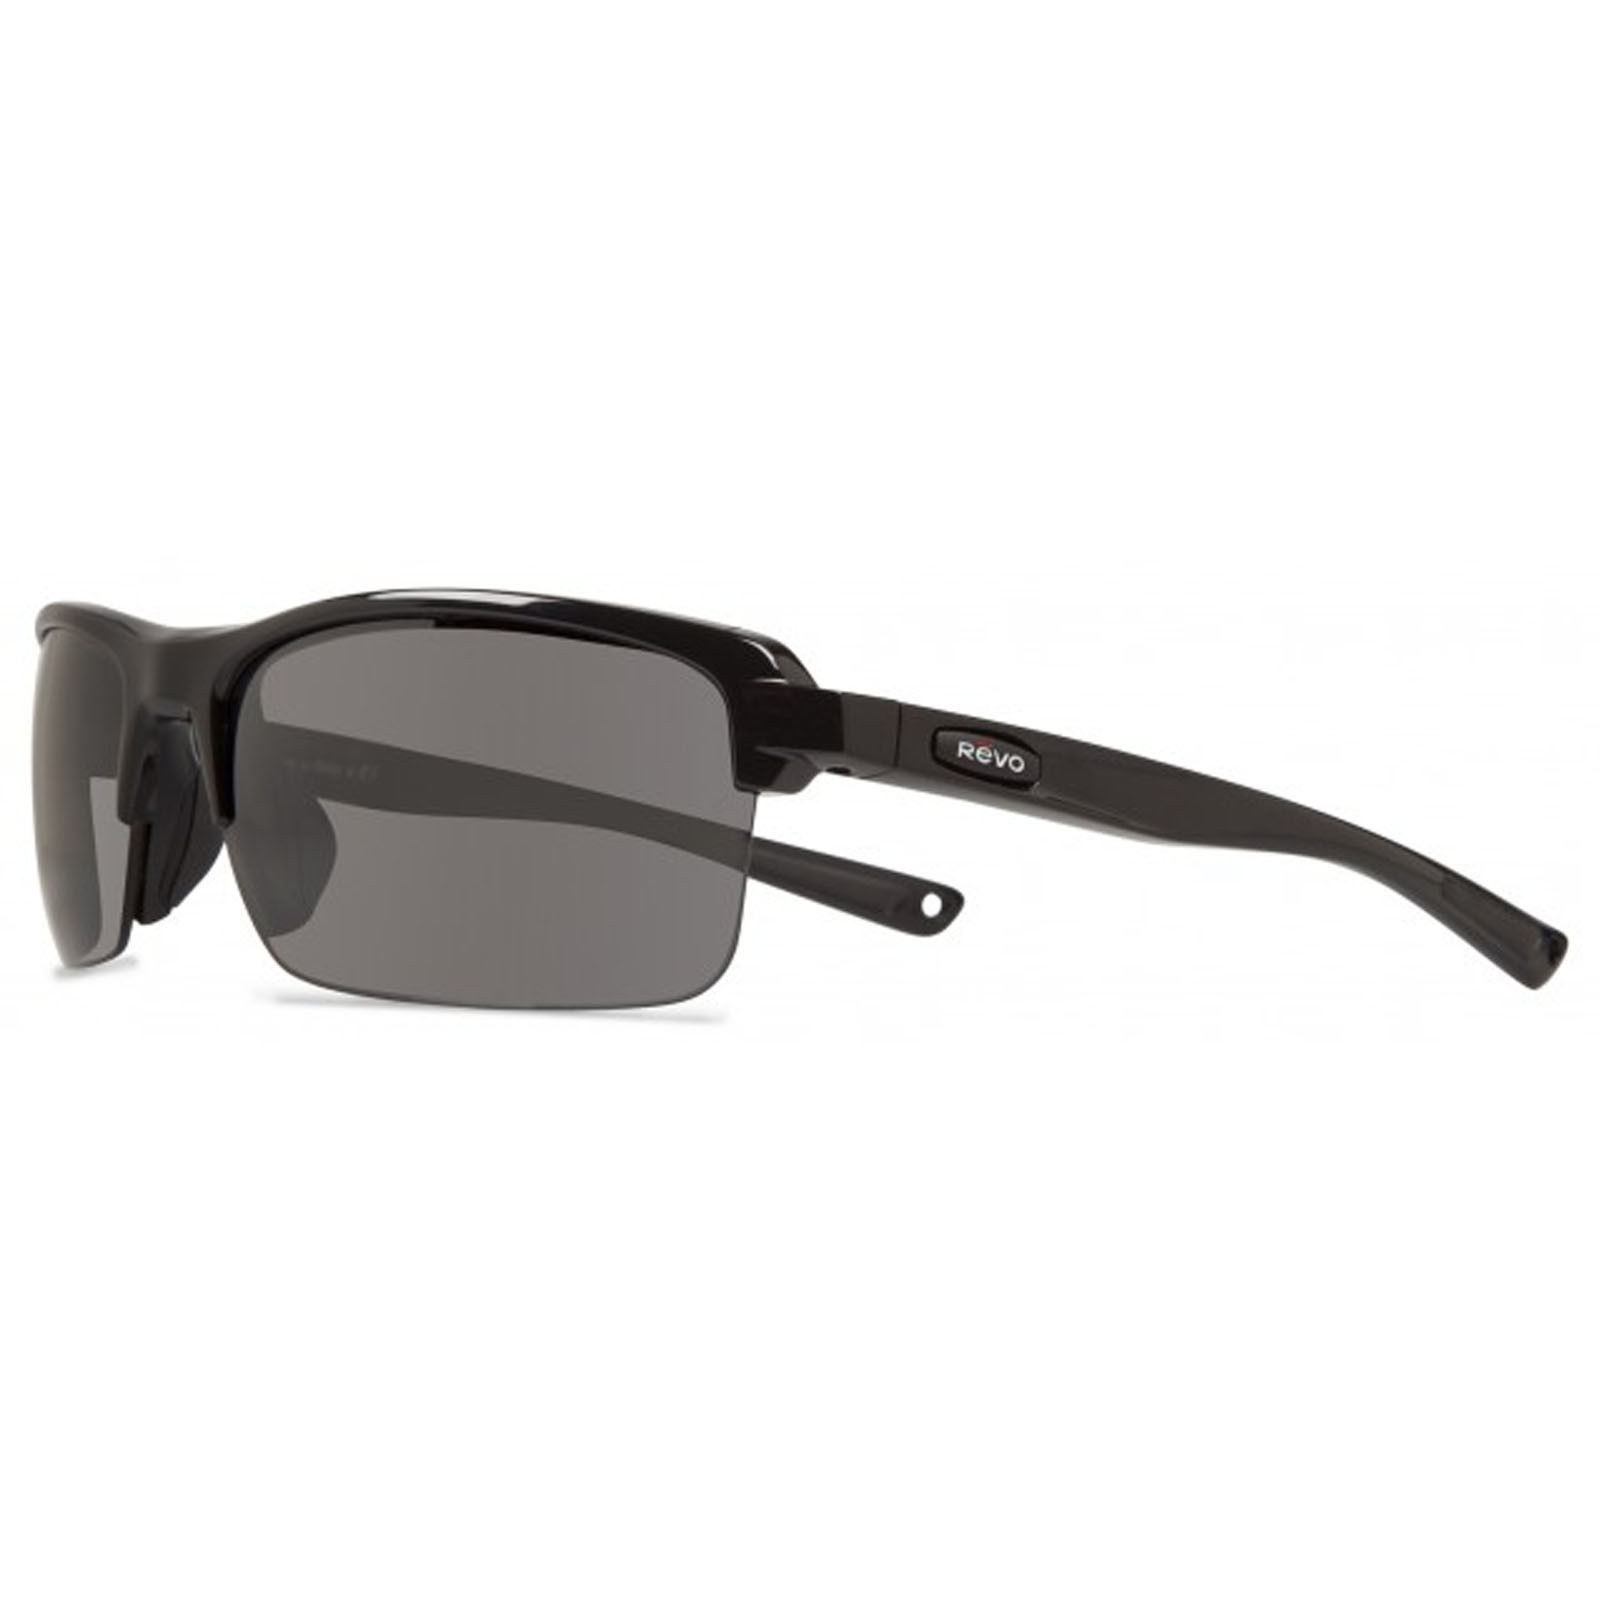 Primary image for REVO men sport sunglasses black RE 4067 CRUXS  Made in ITALY